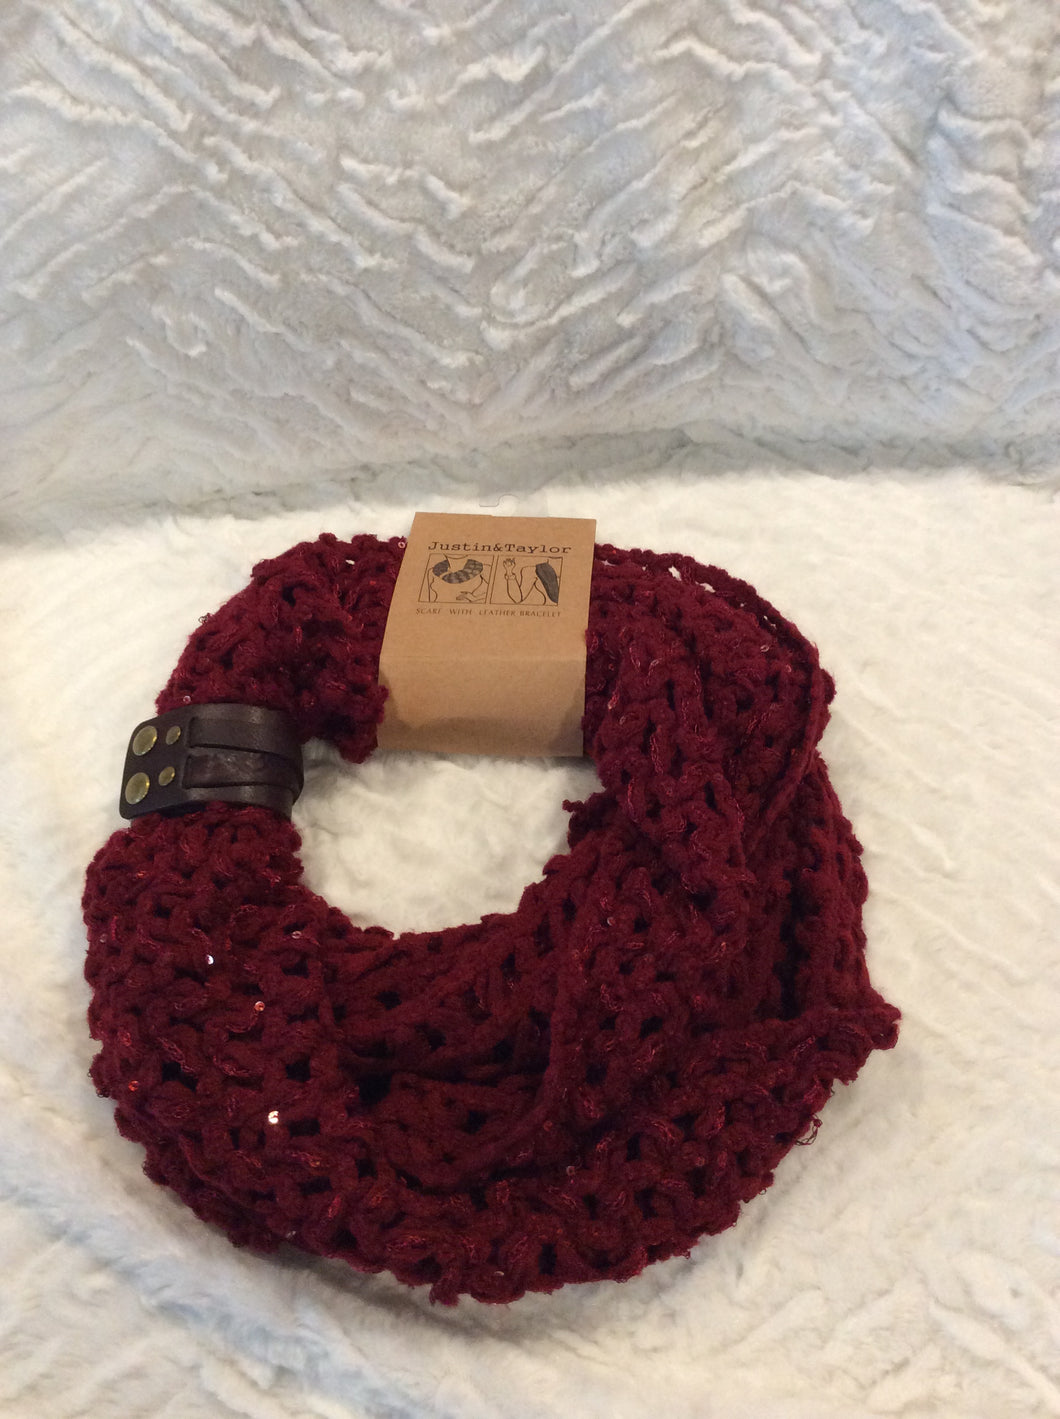 Burgandy Infinity Scarf with Leather Cuff Bracelet